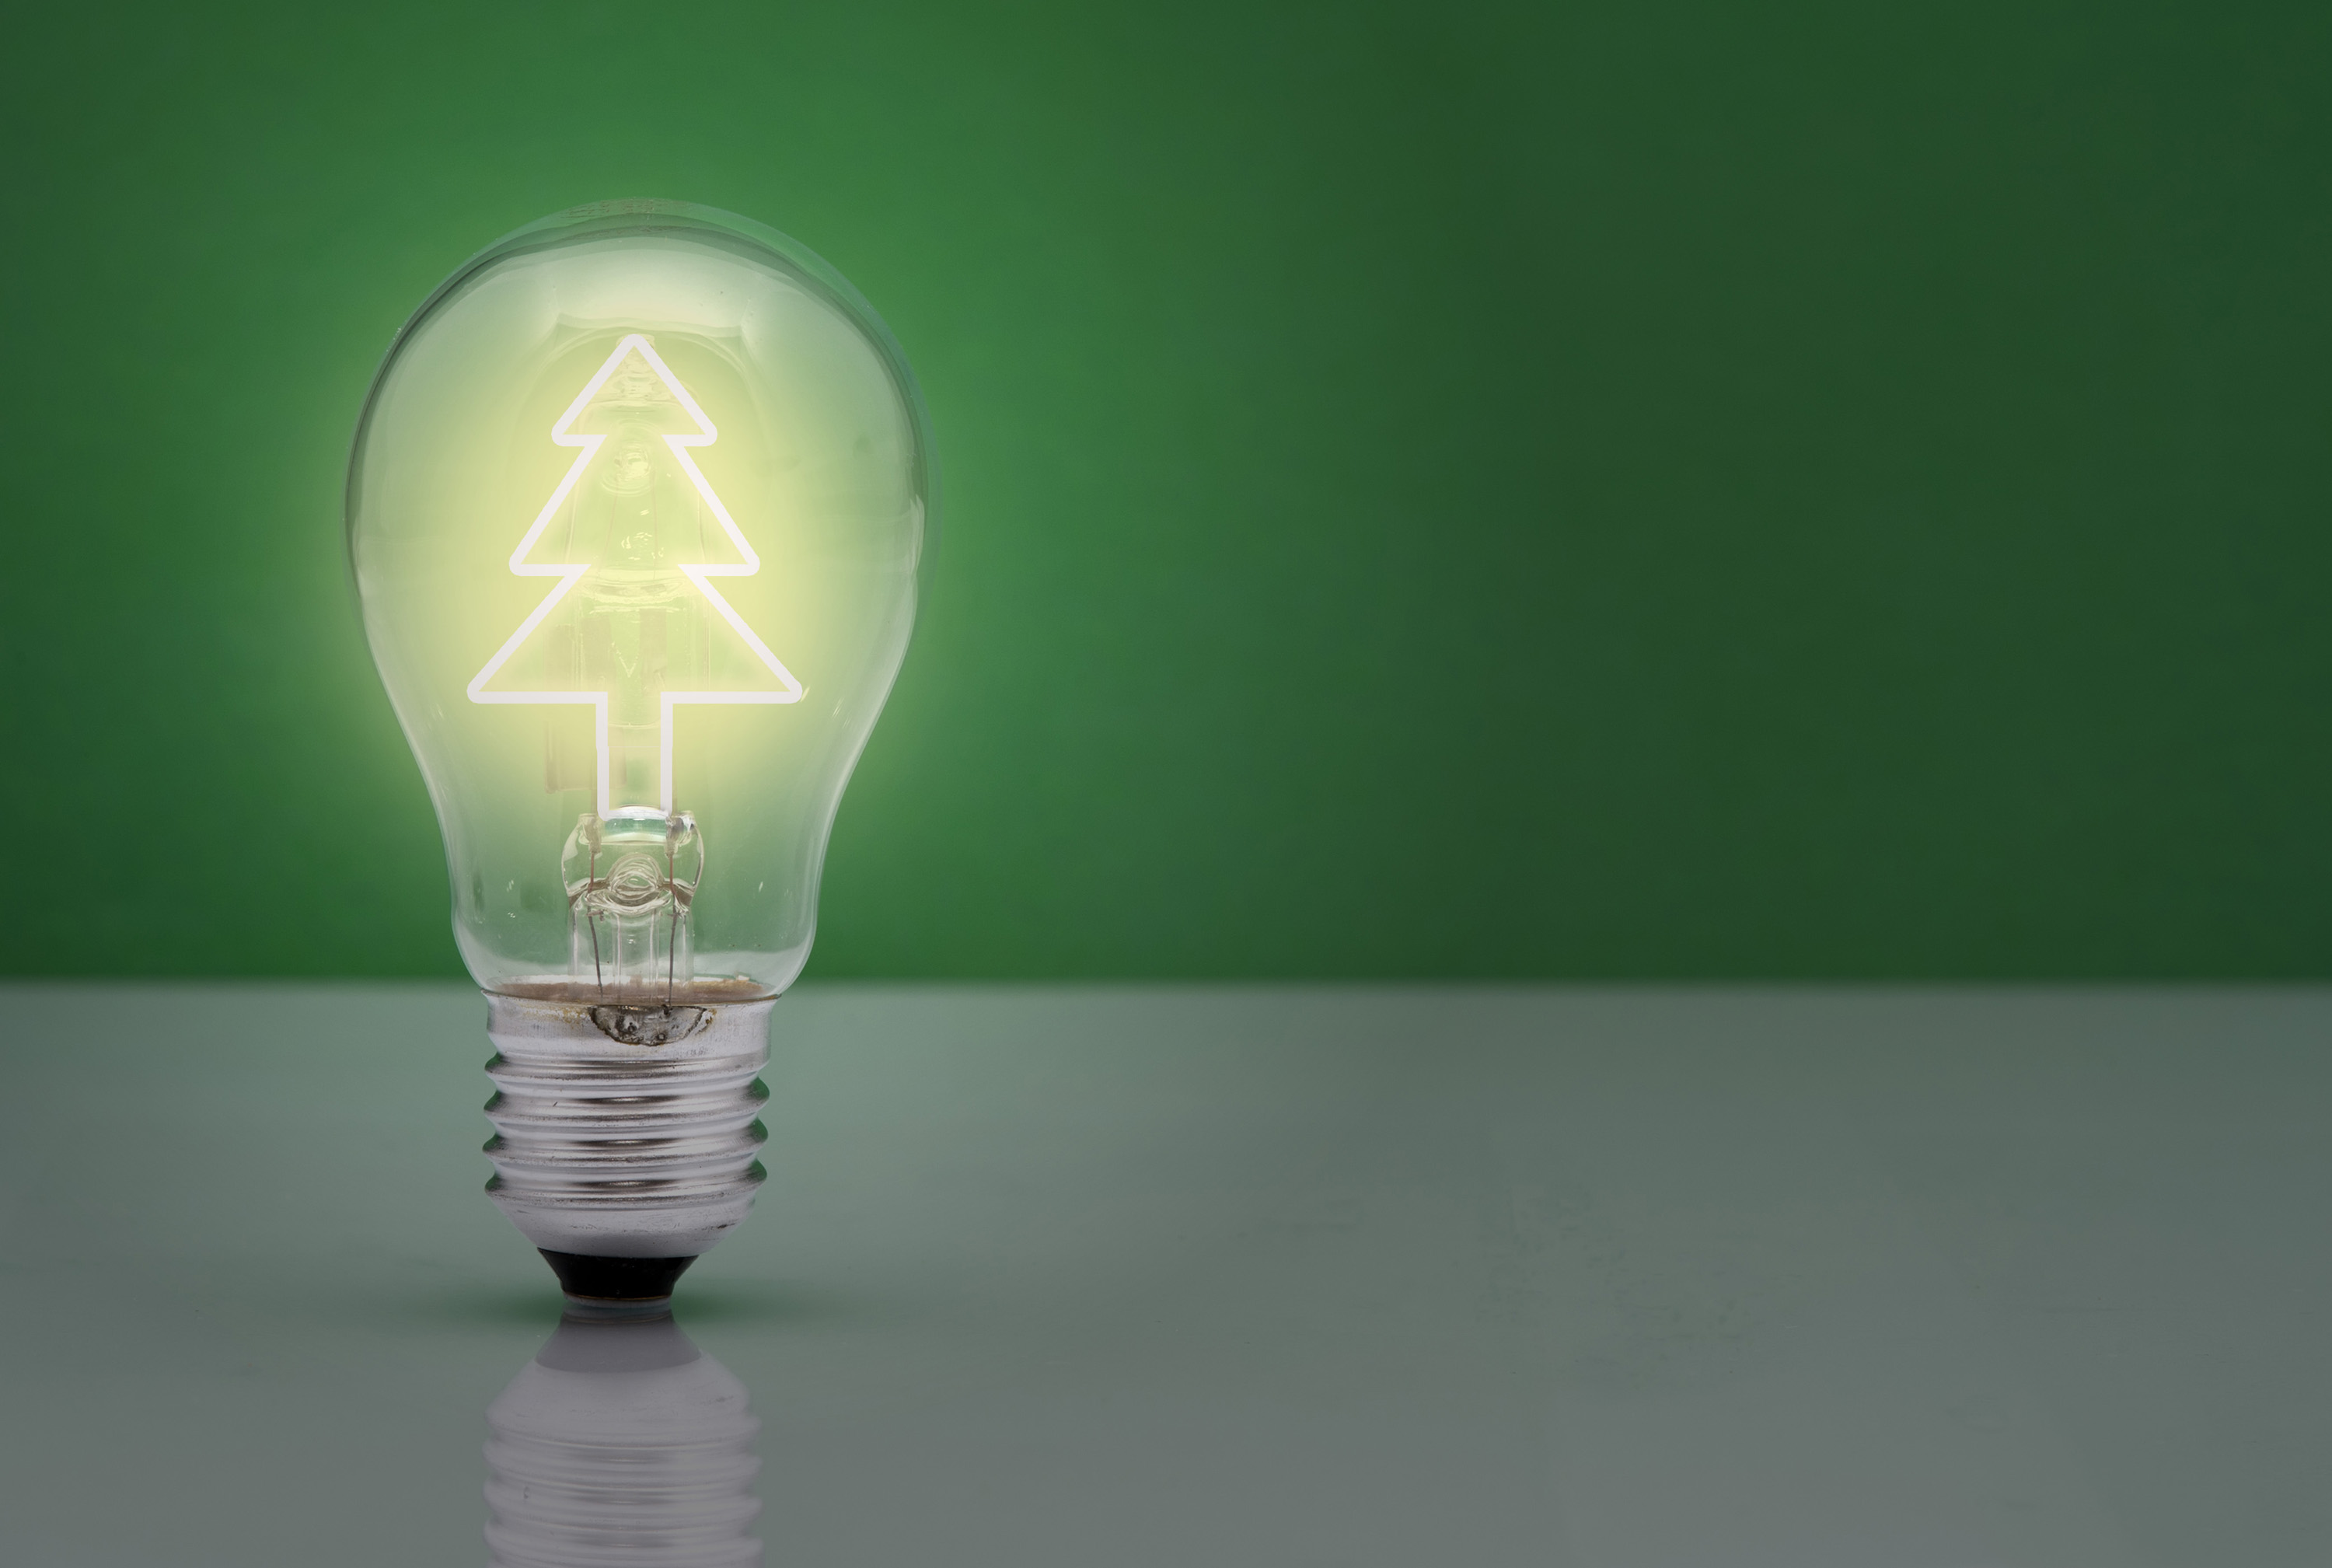 Illuminated light bulb containing a glowing Christmas tree conceptual of Christmas ideas and inspiration with copyspace